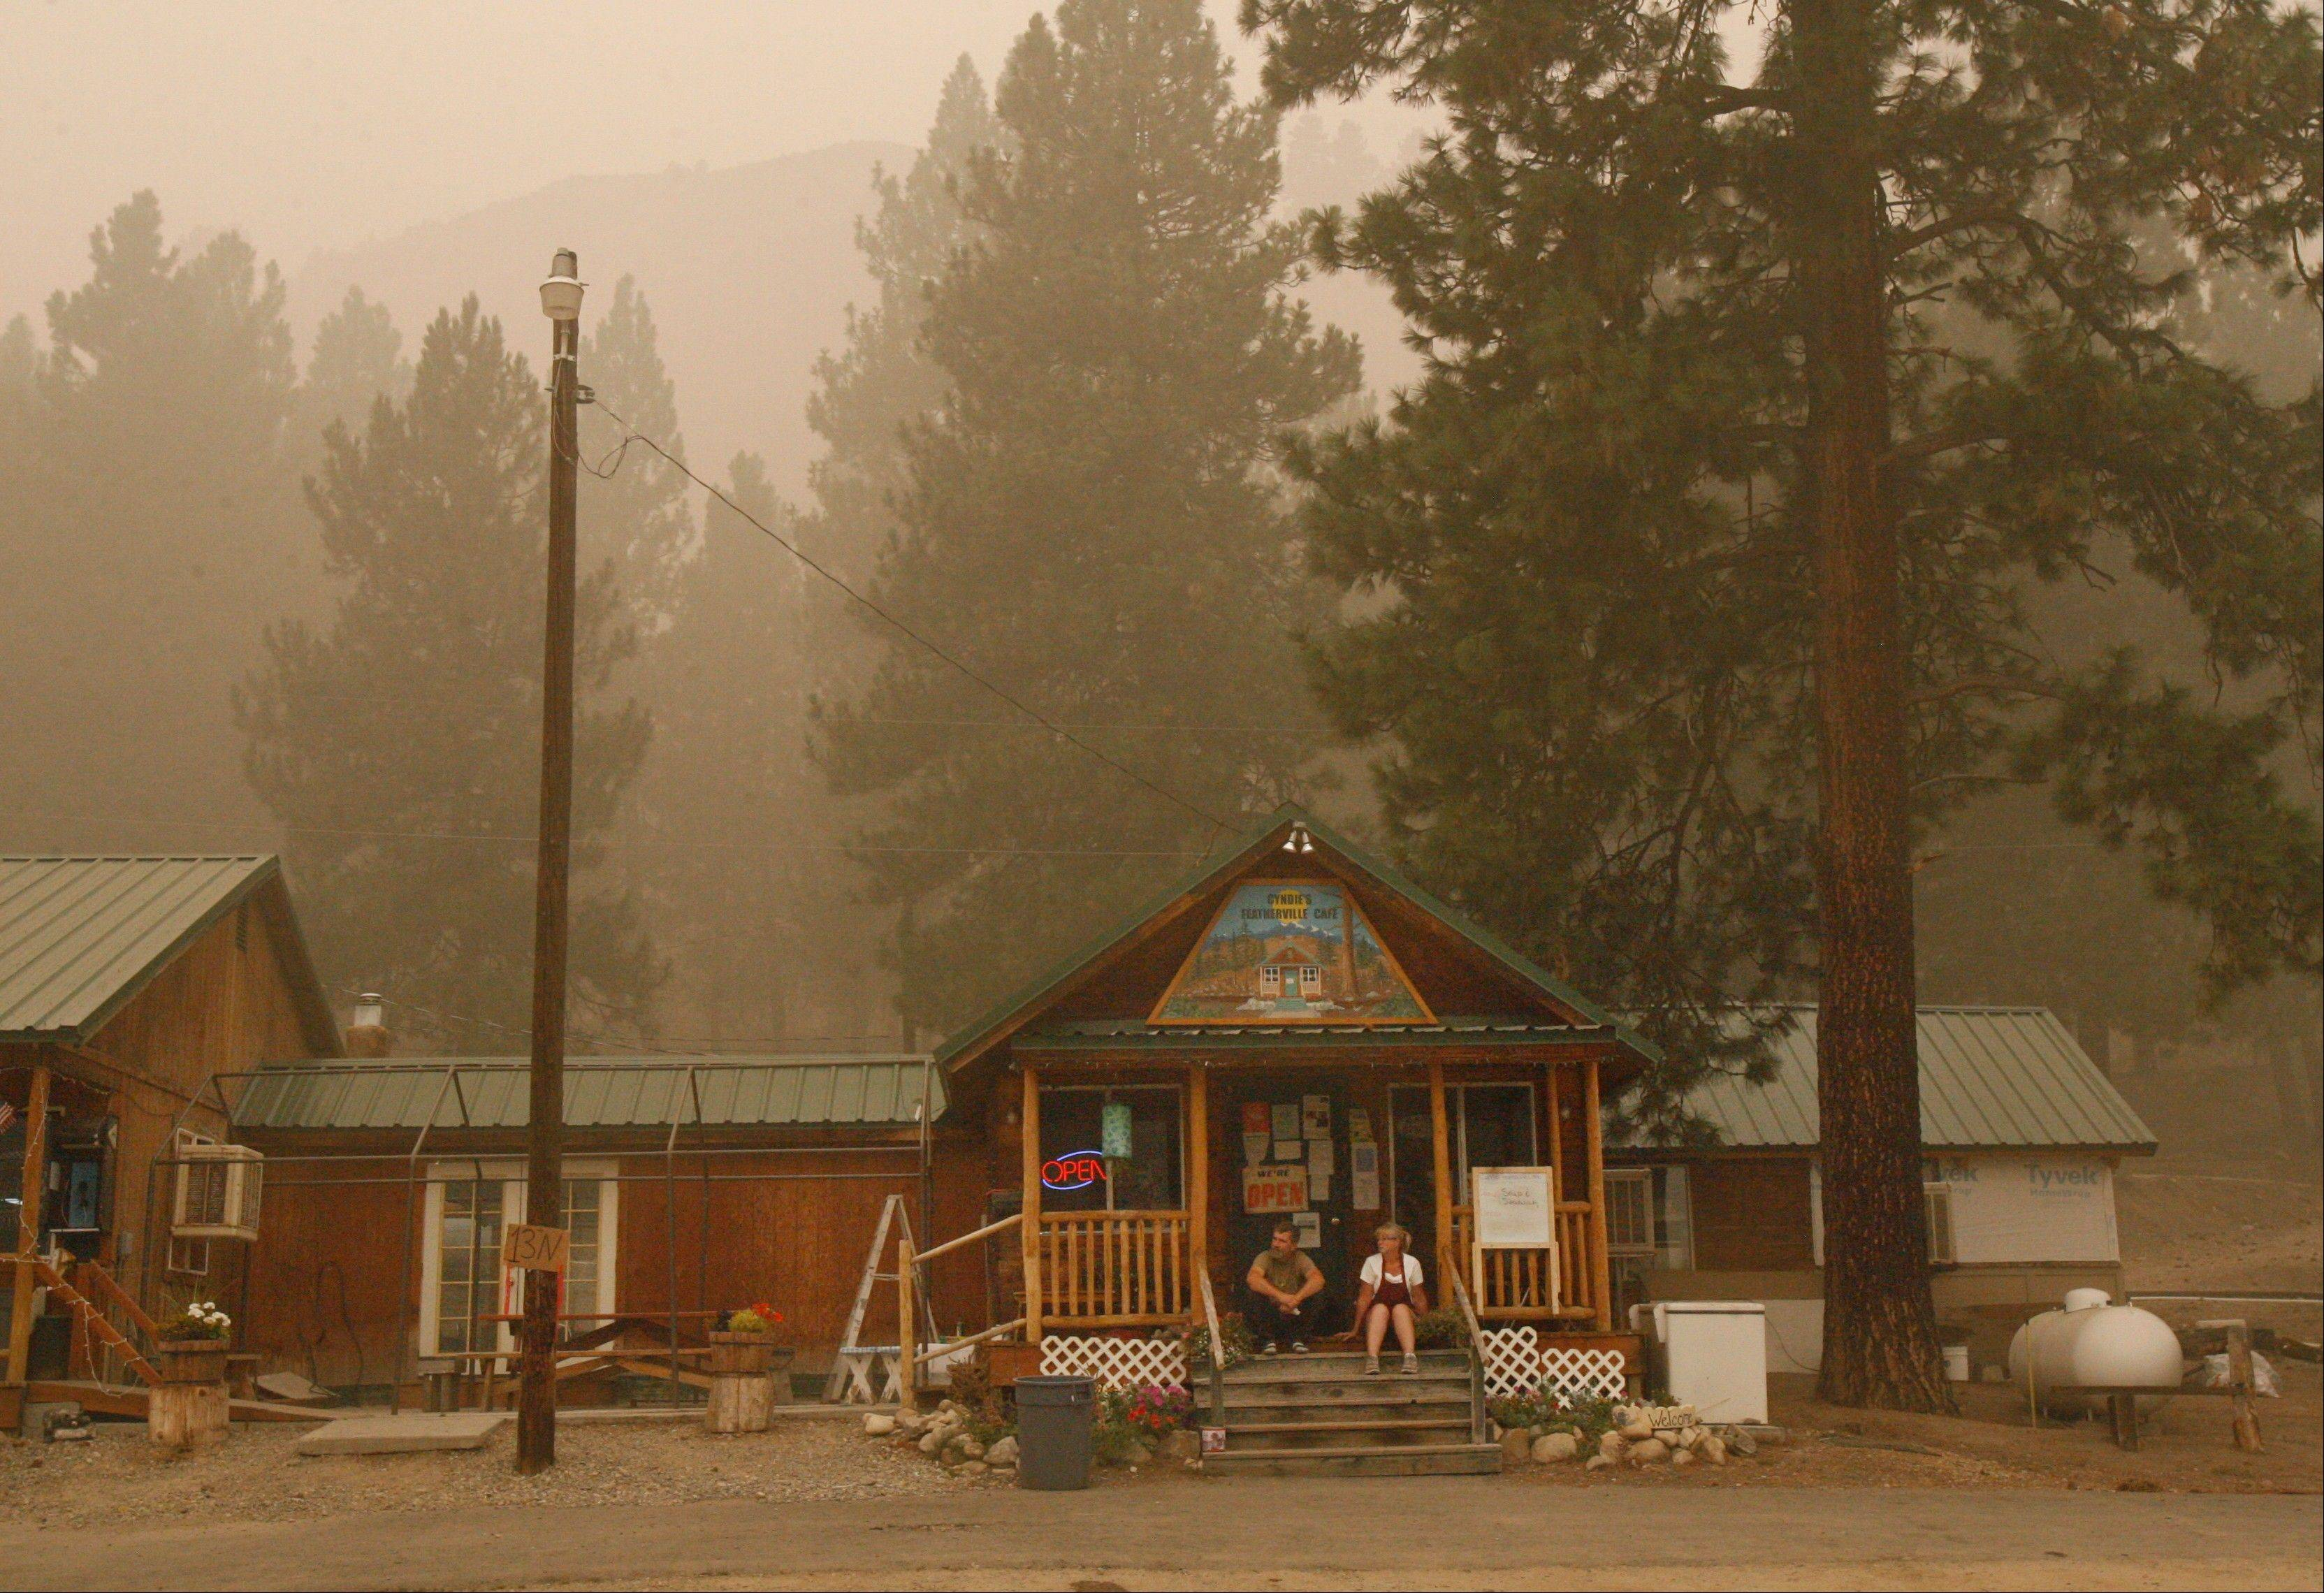 "Pat Christensen, left, and his wife Cyndie sit on the steps of the Featherville Cafe Saturday Aug. 18, 2012 as smoke from Trinity Ridge fire engulfs the area. ""I'm not leaving till I see flames come over the top,"" says Pat Christensen, left, referring to the ridge behind Cyndie's Featherville Cafe. Pat and his wife, Cyndie, are the owners of the cafe in Featherville, Idaho. Elmore County Sheriff's deputies issued mandatory evacuation orders to residents of Featherville on Saturday, Aug. 18, 2012, because of the Trinity Ridge fire. The Christensens stayed to keep their generators running, which keep the cafe's prime rib, hamburgers and meat frozen. ""We'll be open,"" says Pat."